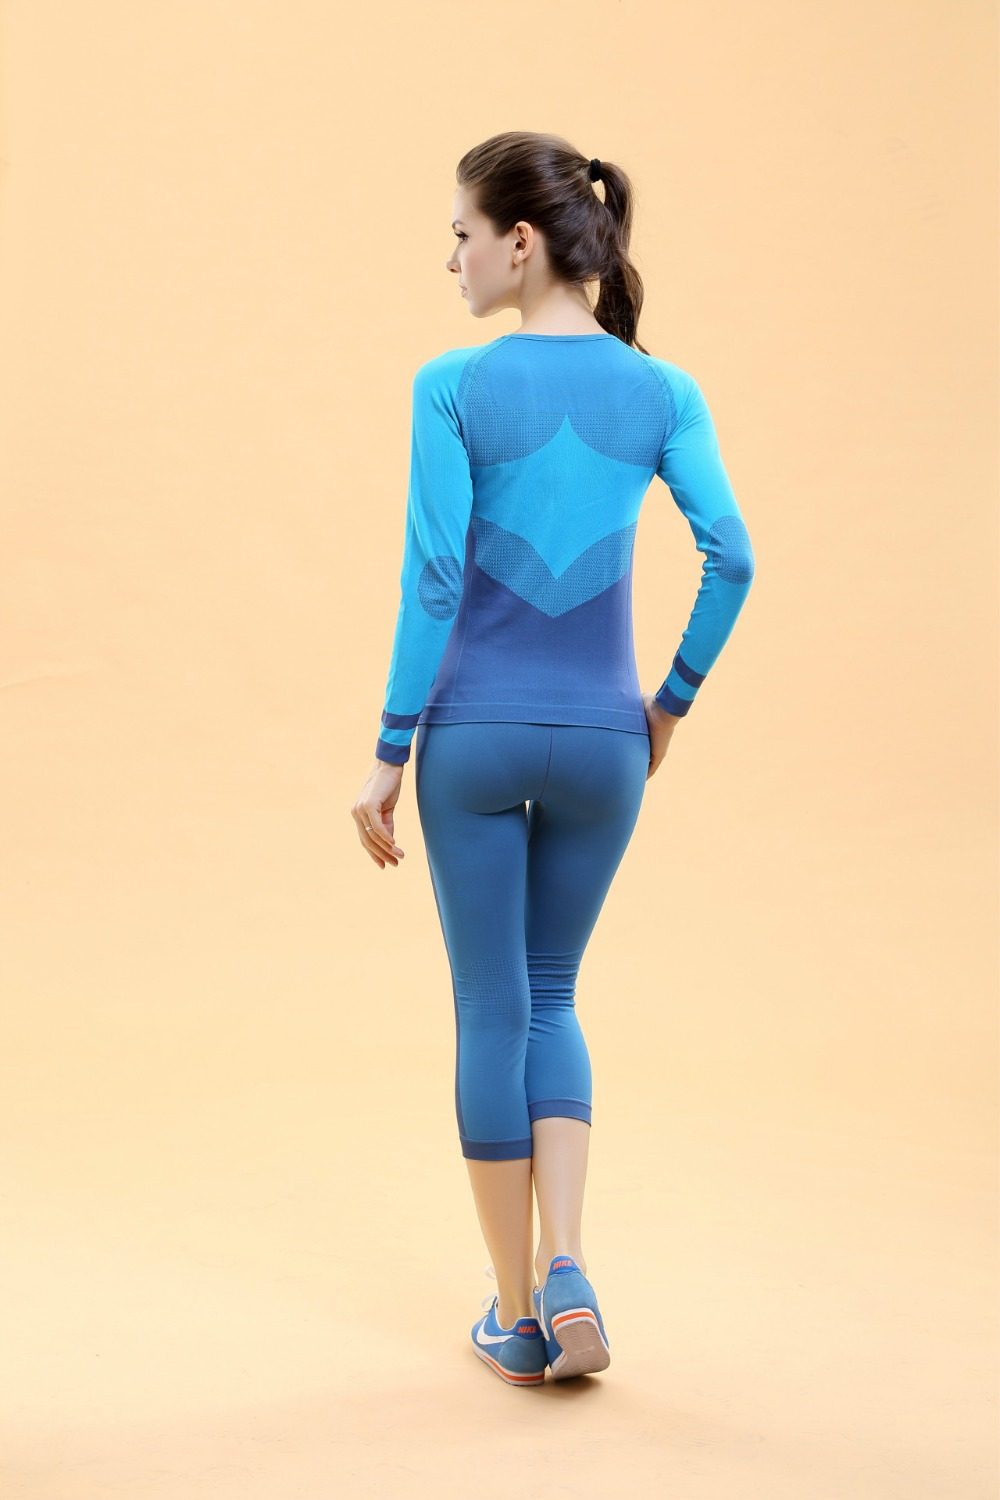 Women s yoga sets sport suit workout clothes female fitness sports - Aliexpress Com Buy Women Tops Shorts Yoga Sets Fitness Clothing Sport Suit For Female Women S Gym Panties Pilates Running Slim Leggings Shirts From